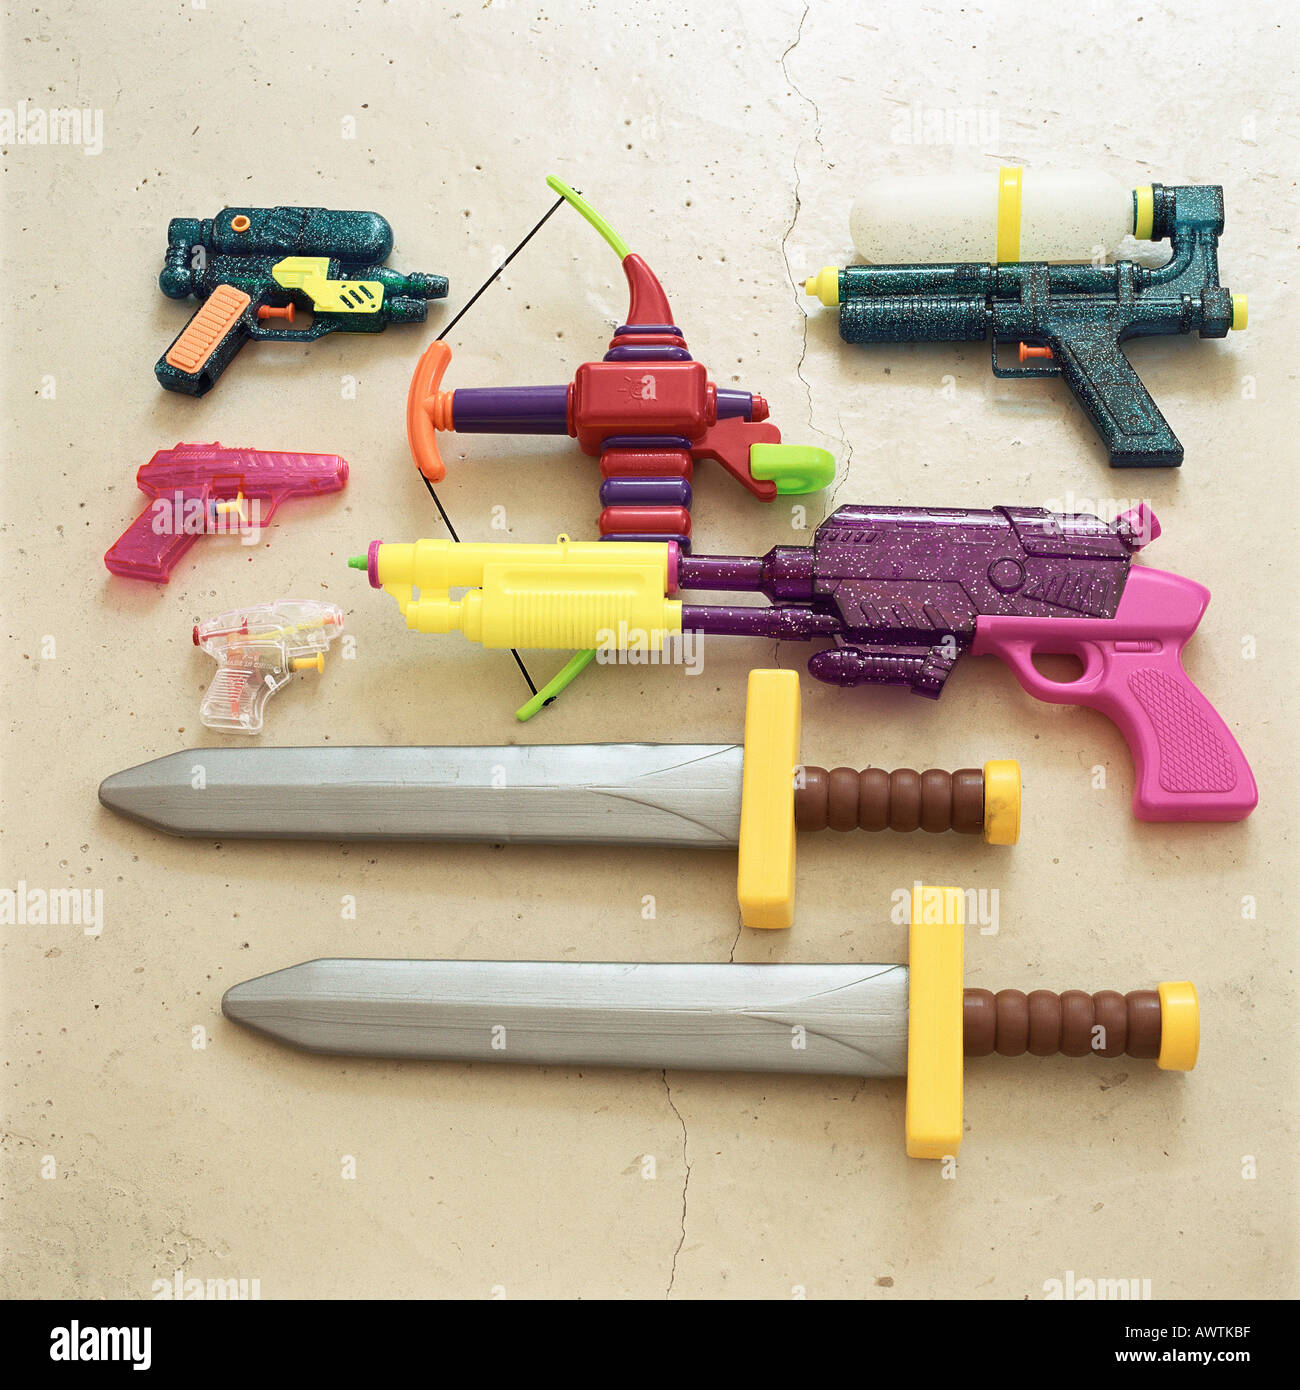 Toy Swords And Guns : Children s toy swords and guns stock photo royalty free